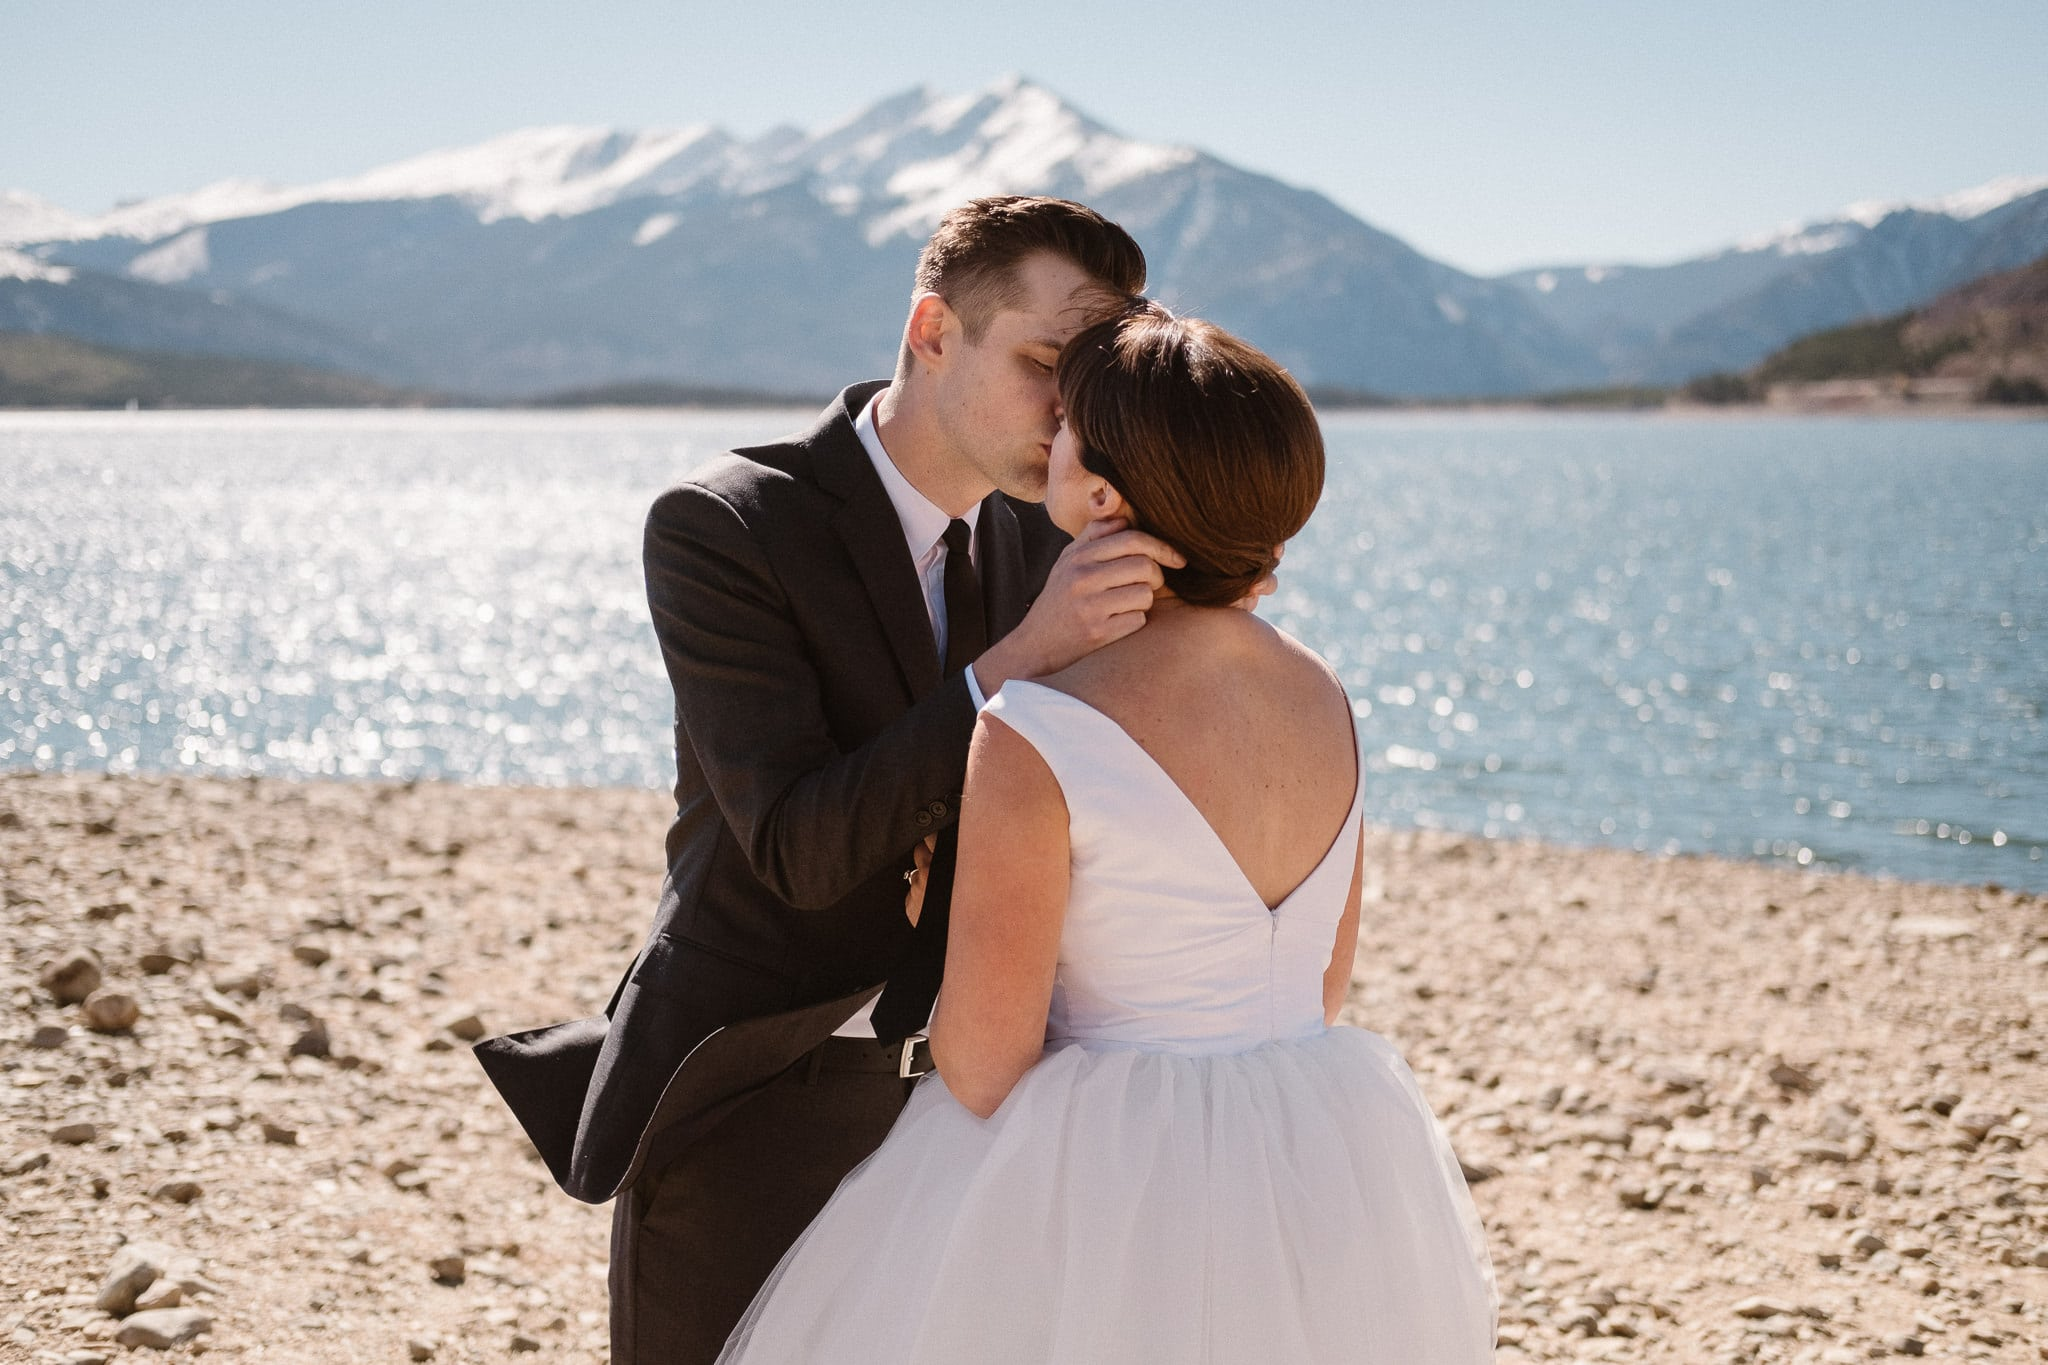 Silverthorne Pavilion Wedding Photographer, Colorado mountain wedding photographer, bride and groom kissing by Lake Dillon with snowcapped mountains behind